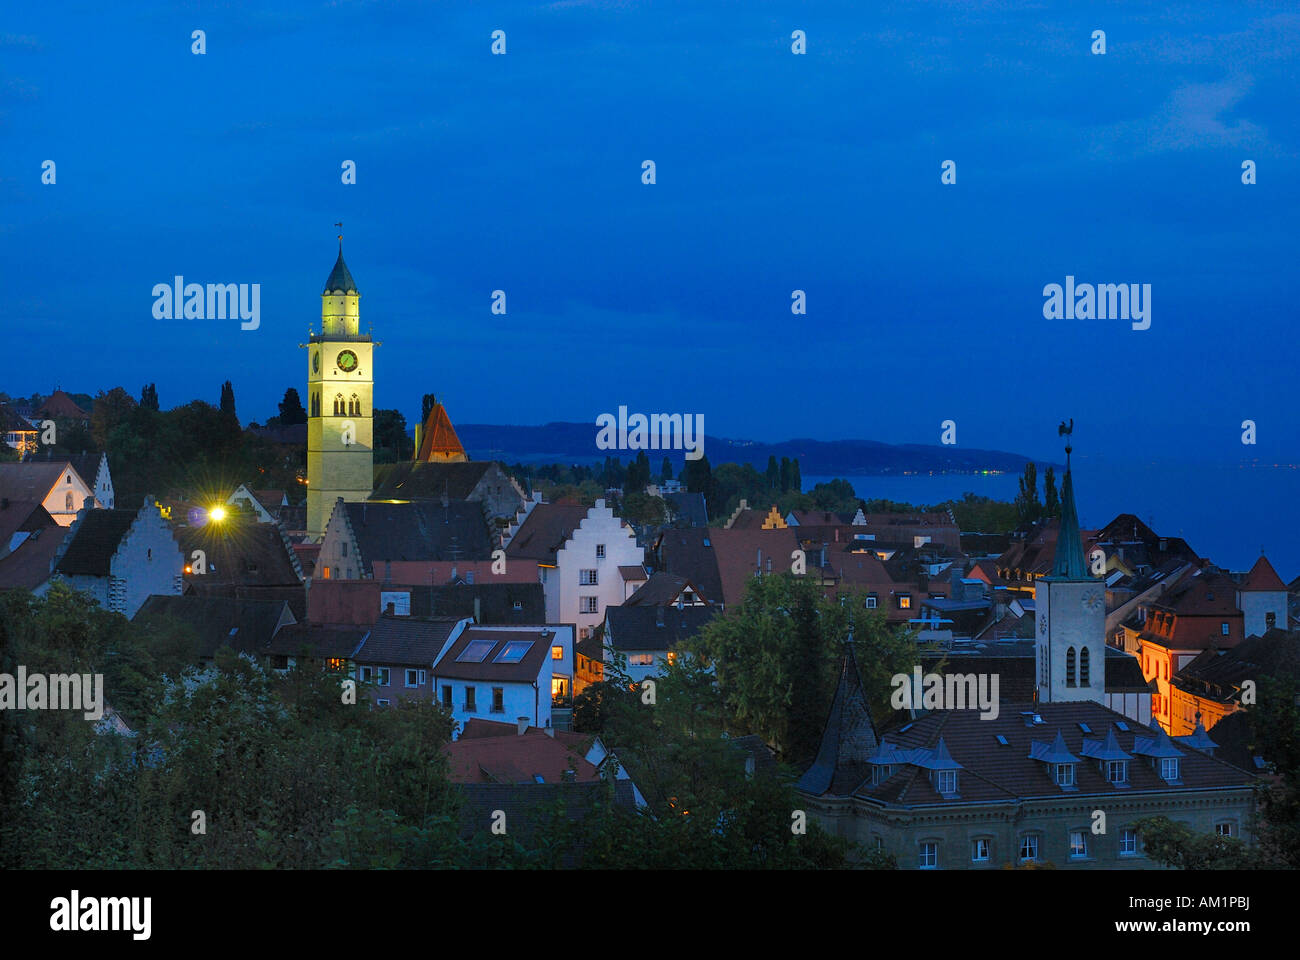 Ueberlingen - the old part of town in the dusk - Baden Wuerttemberg, Germany, Europe. - Stock Image